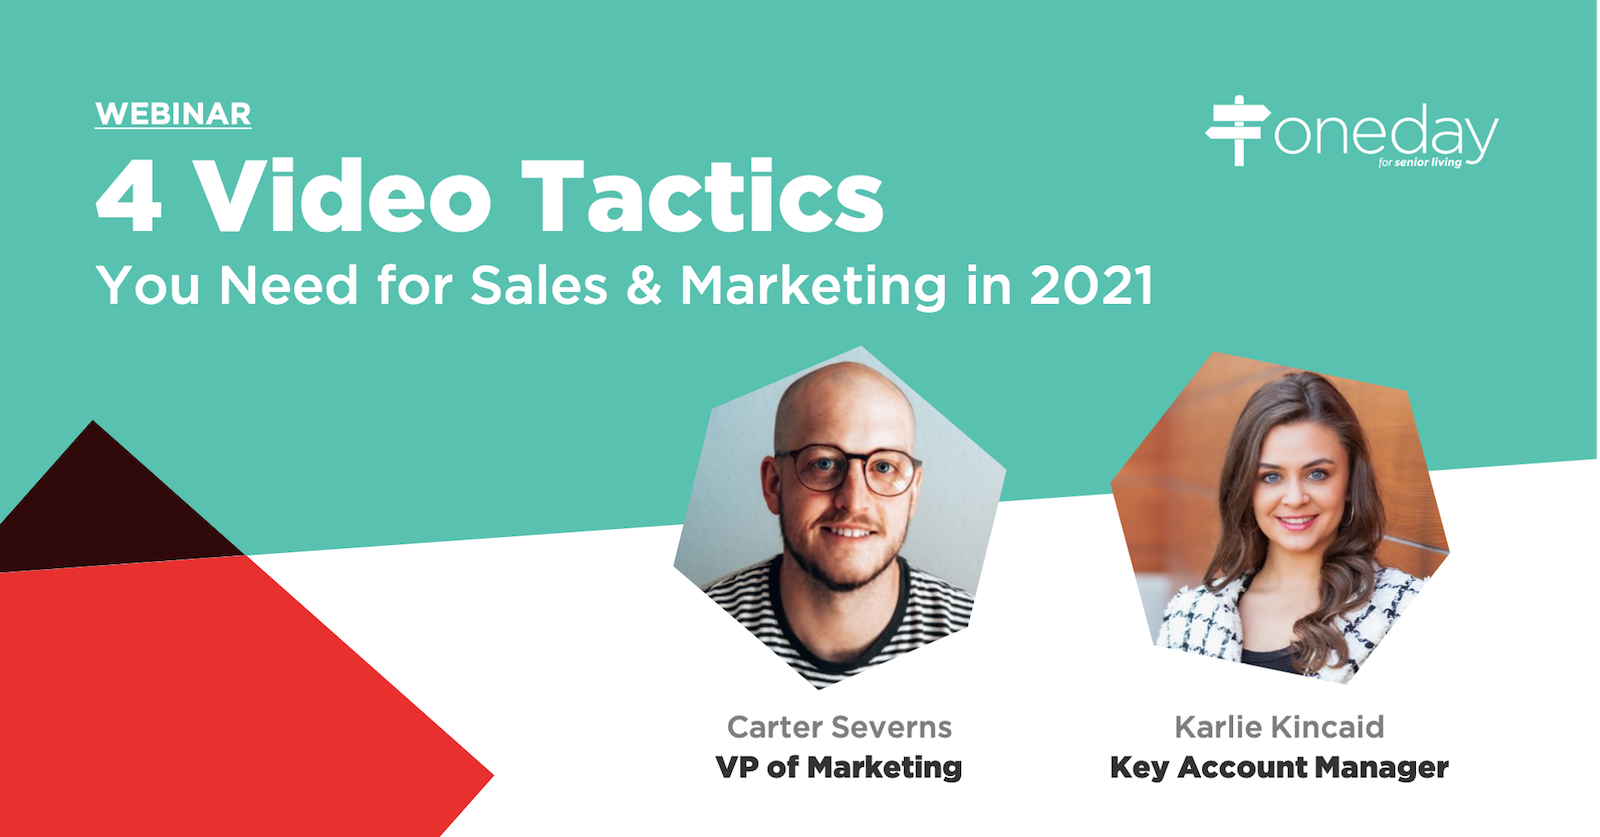 4 Video Tactics You Need for Sales & Marketing in 2021